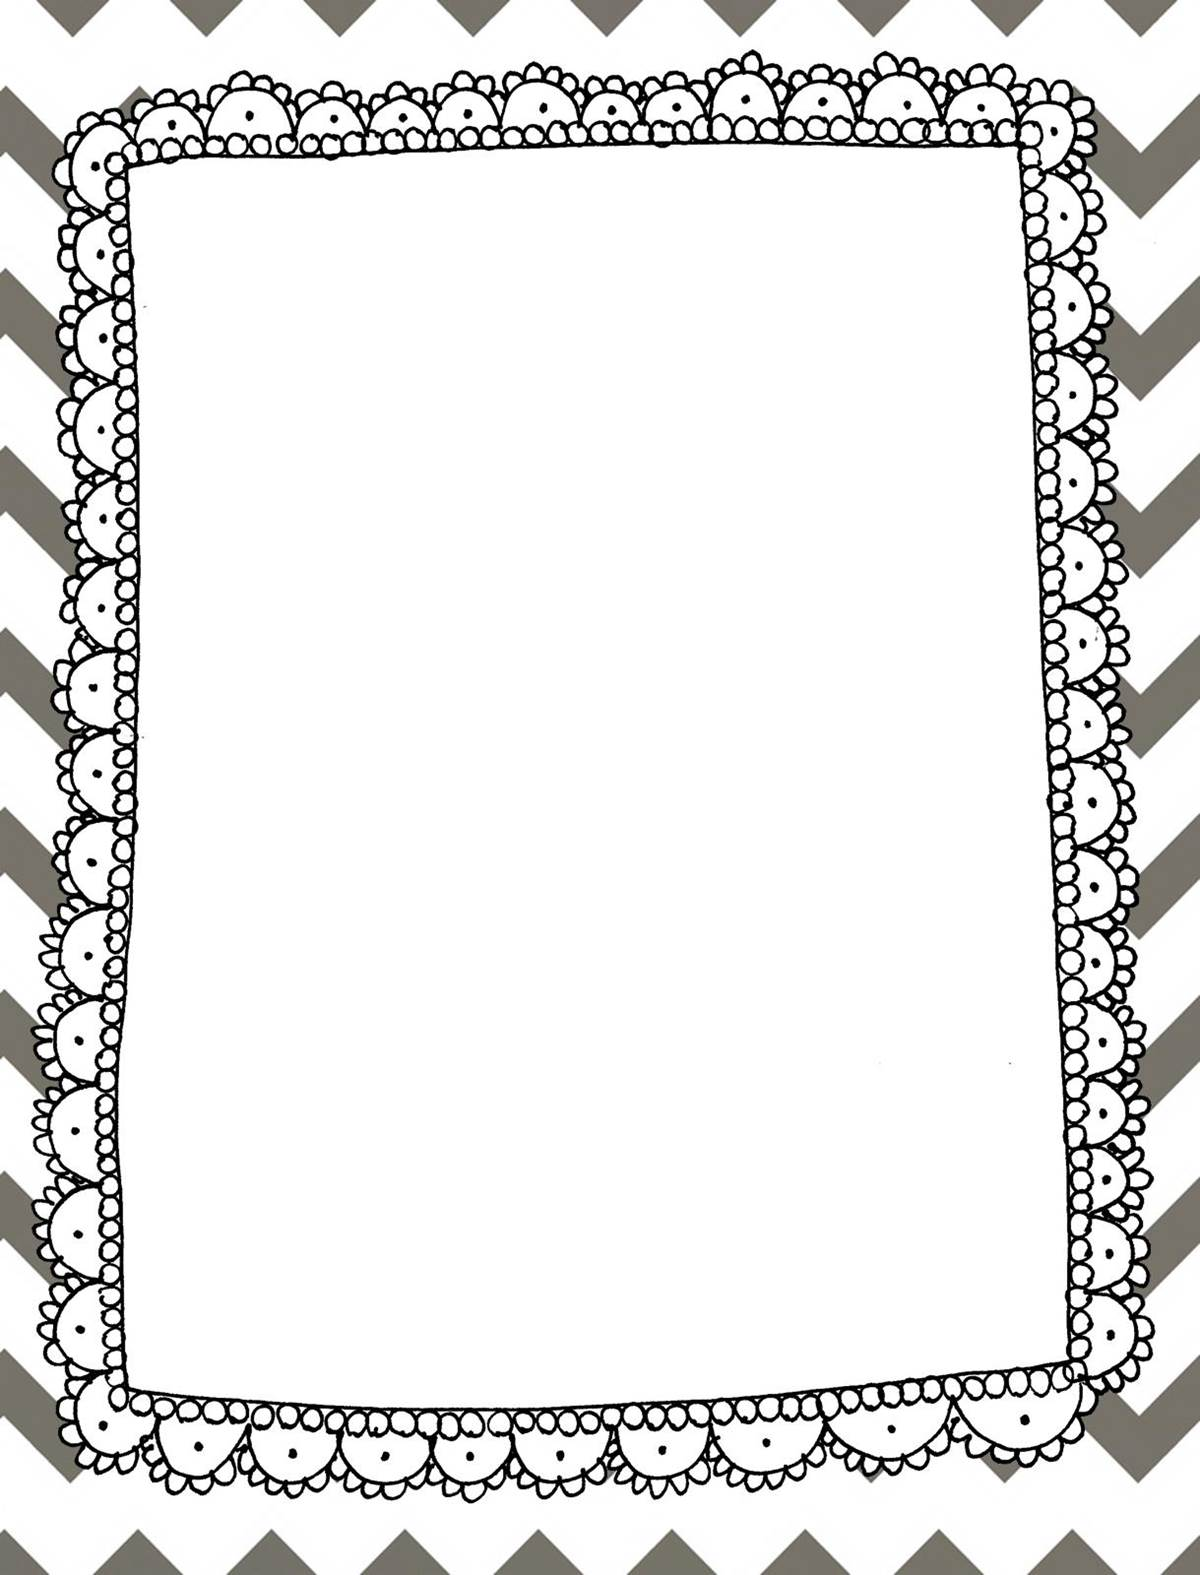 Binder spines are included for 4 different sized binders: (the Chevron ...